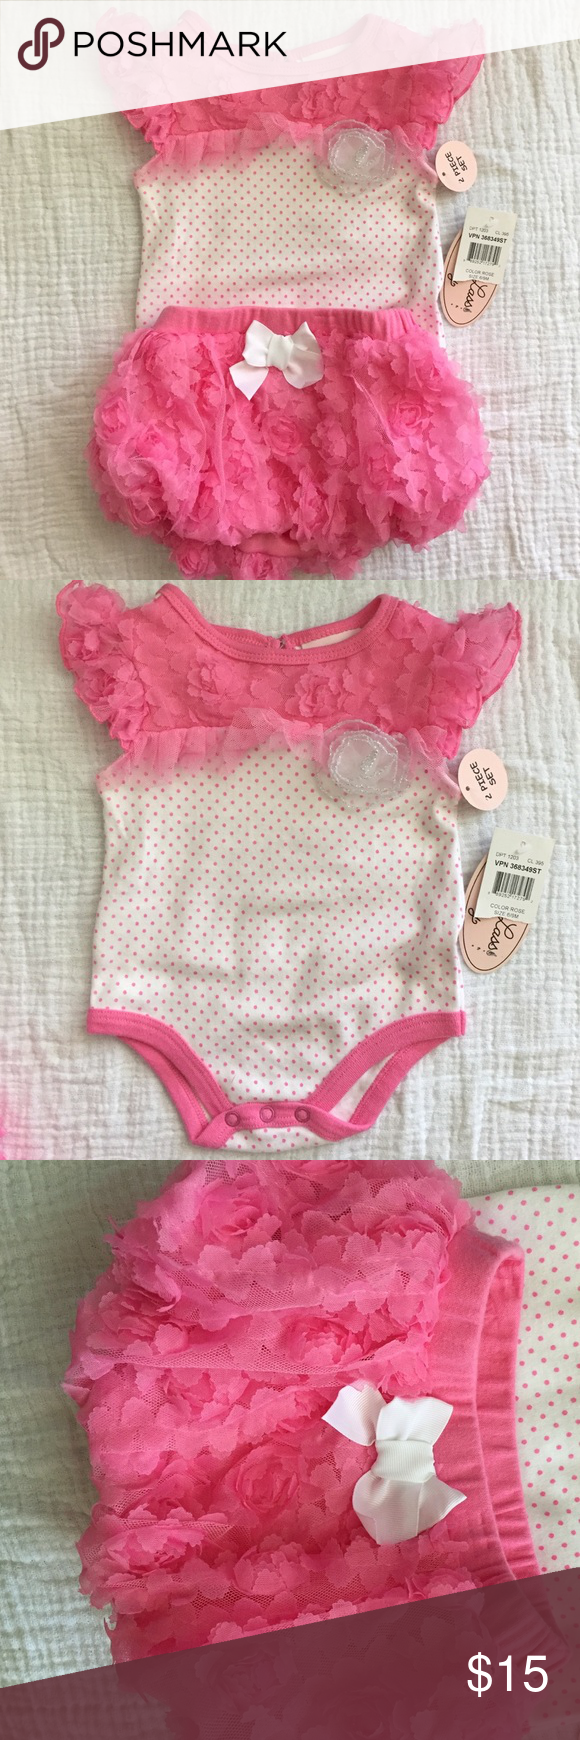 👭 Polka Dot and Lace Skirt and Onesie NWT. Polka dot onesie with dainty flower lace neckline. Keyhole closure in back. Snaps in stride. Bubble skirt with matching flower lace. Matching Sets